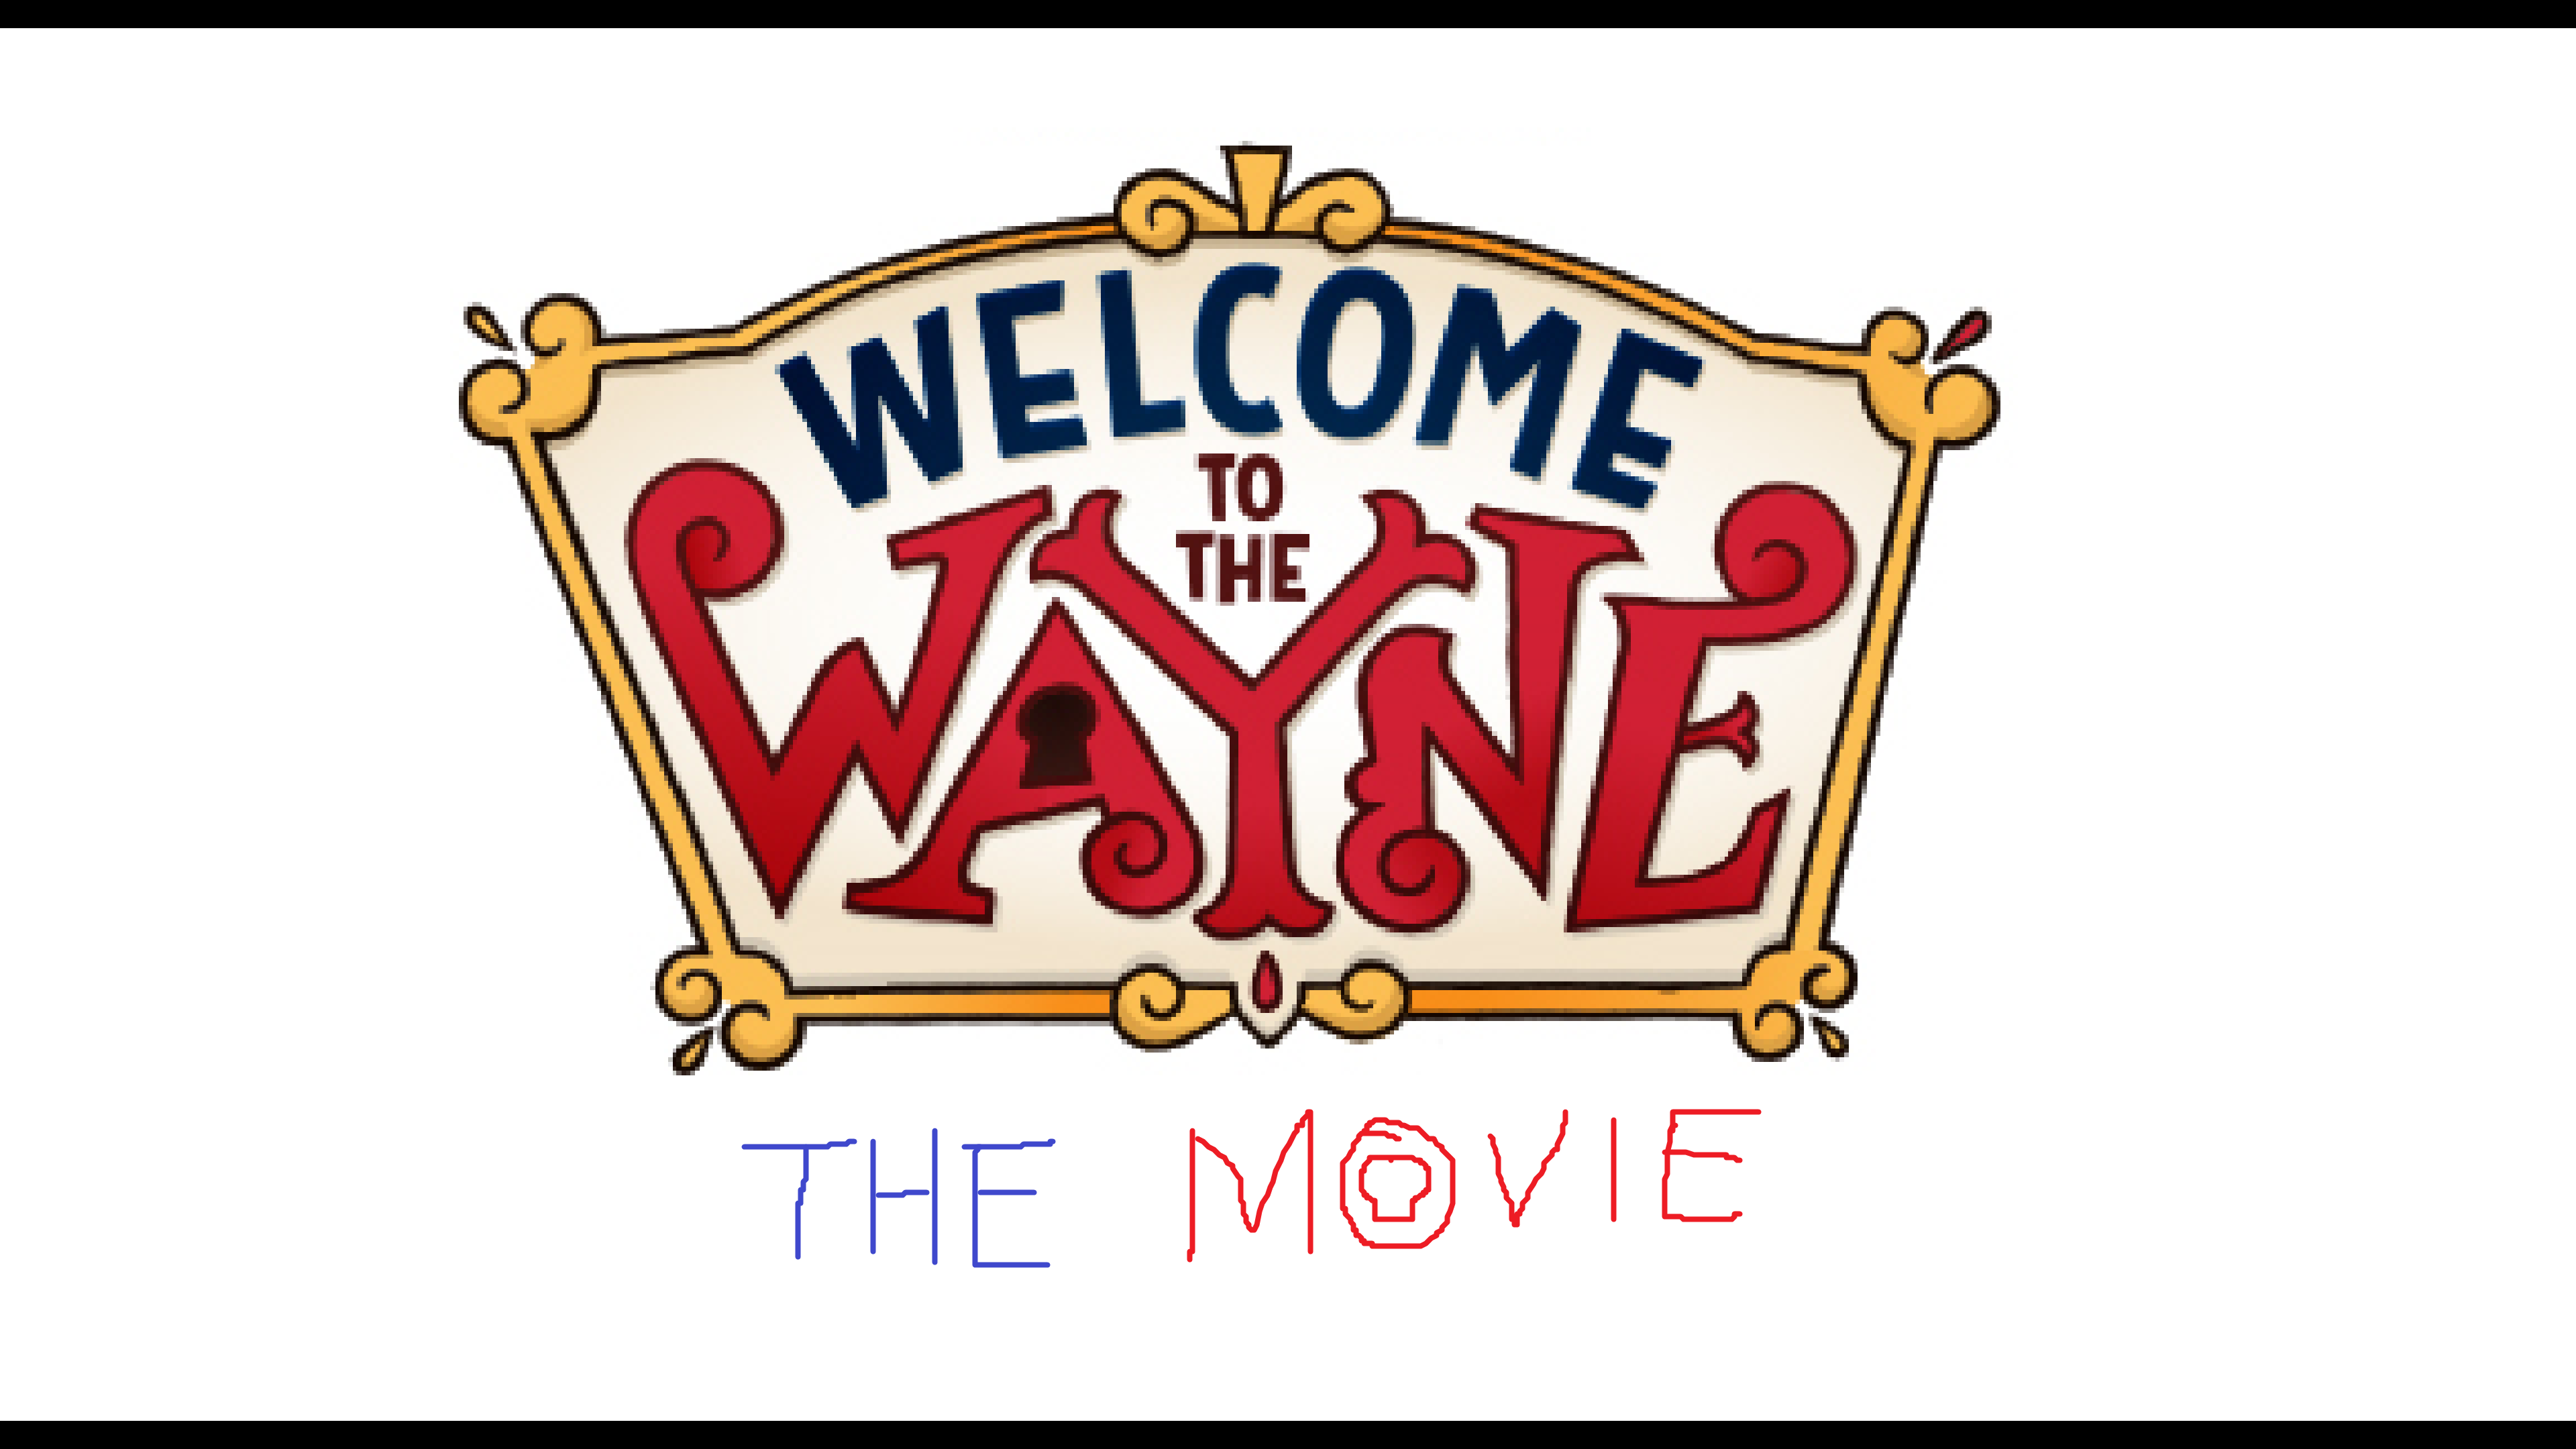 Welcome to the Wayne: The Movie